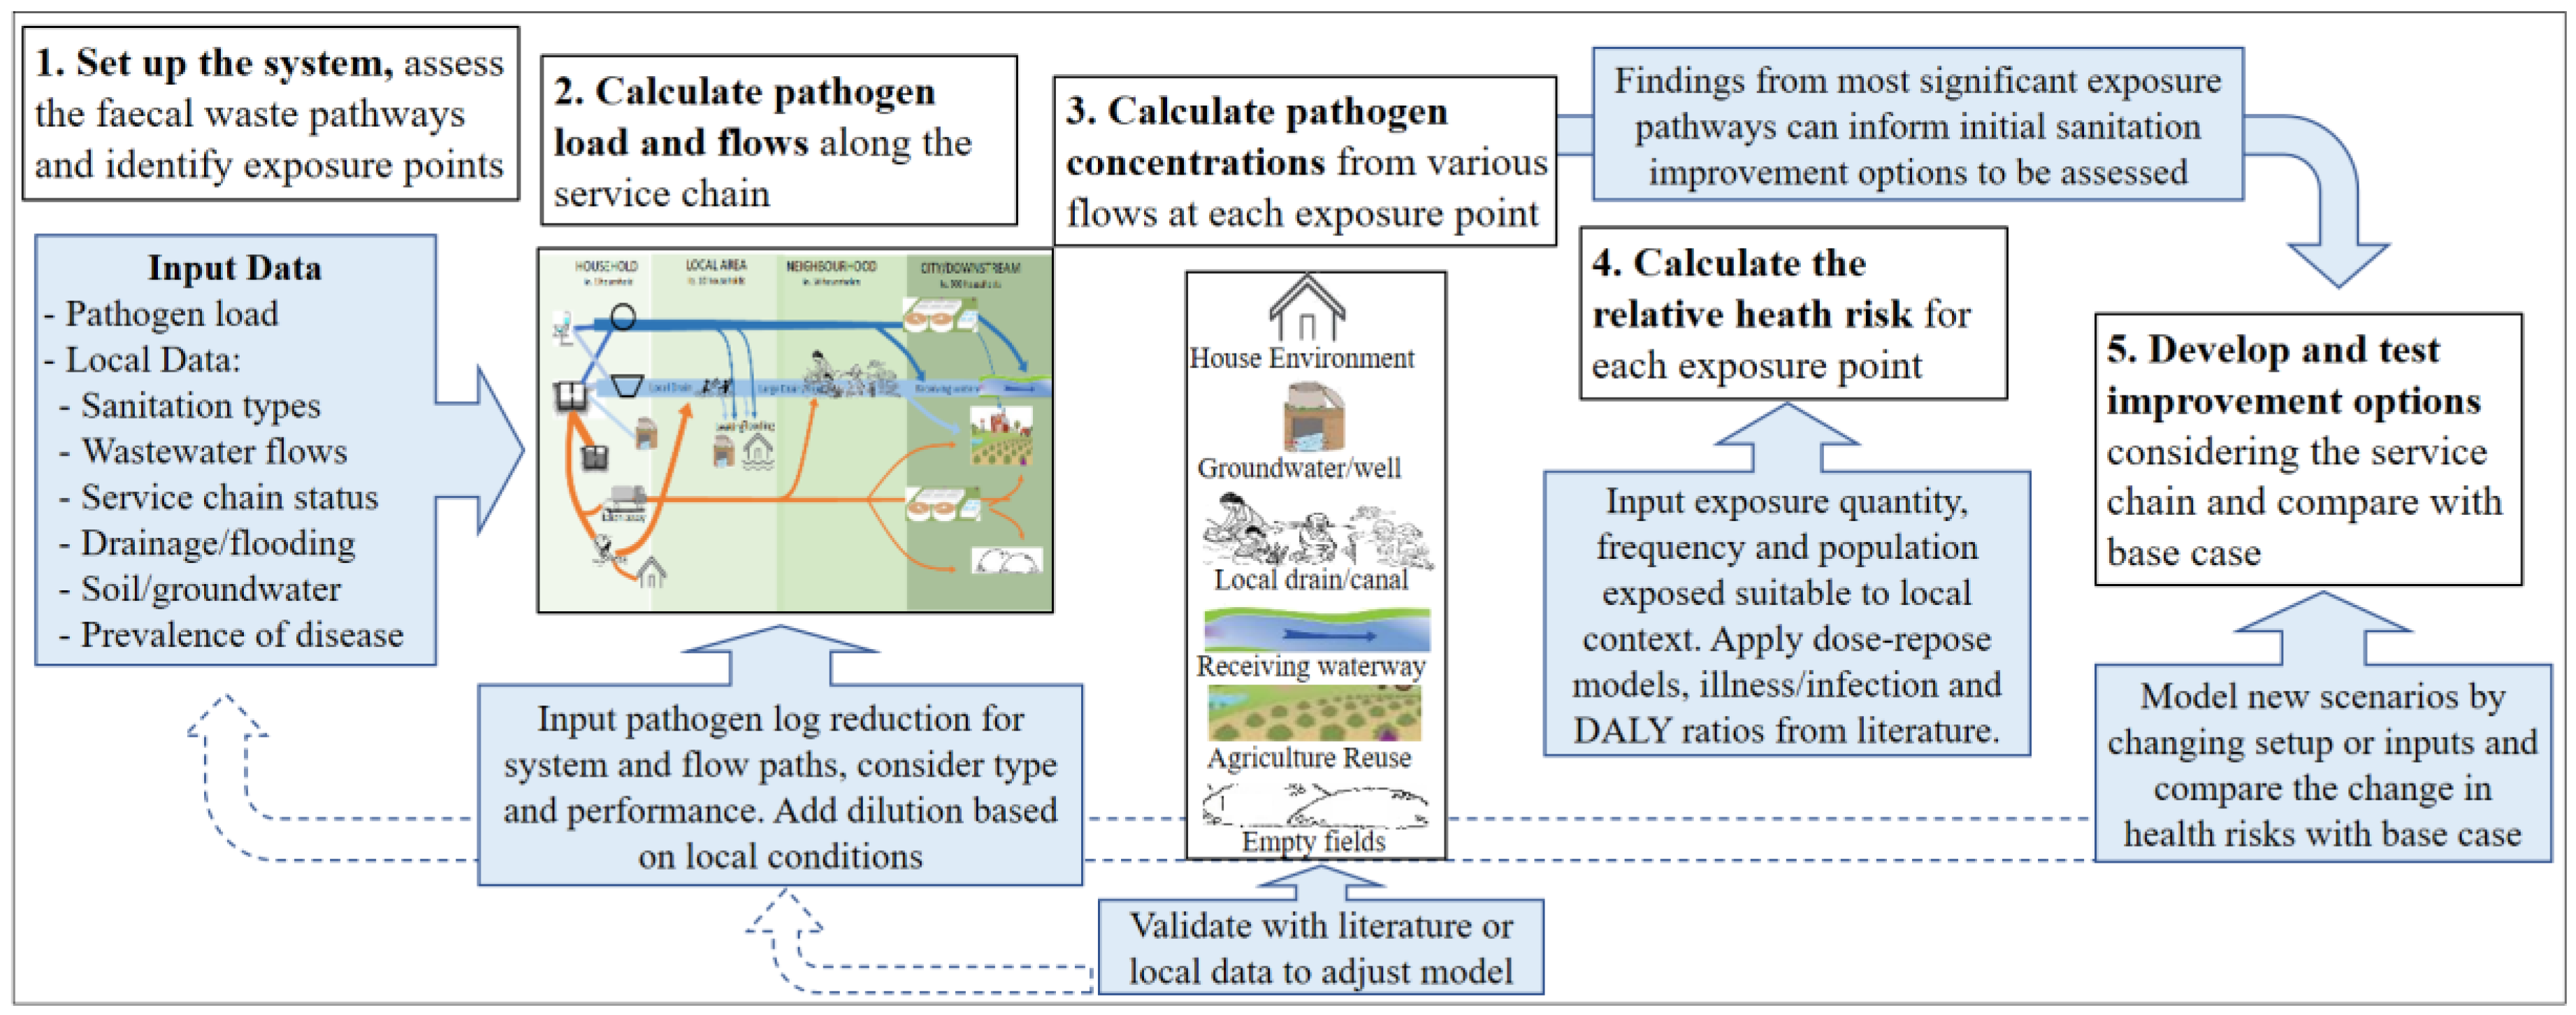 IJERPH | Free Full-Text | Faecal Pathogen Flows and Their